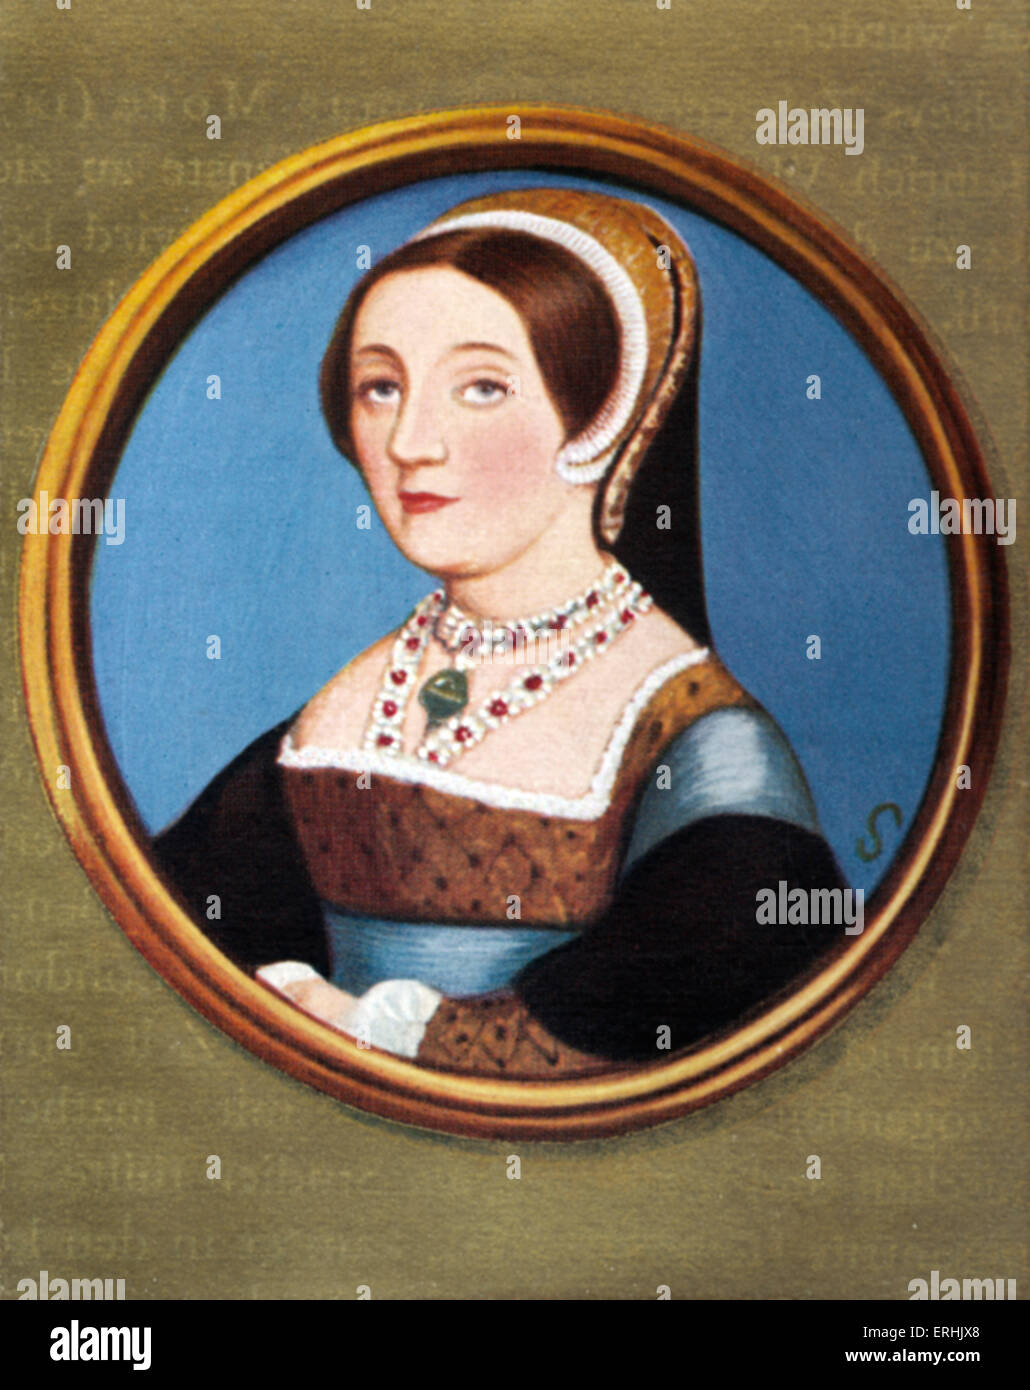 Catherine Howard. Portrait of the fifth wife of Henry VIII of England. c. 1520 and 1525 -  February 13 1542 - Stock Image